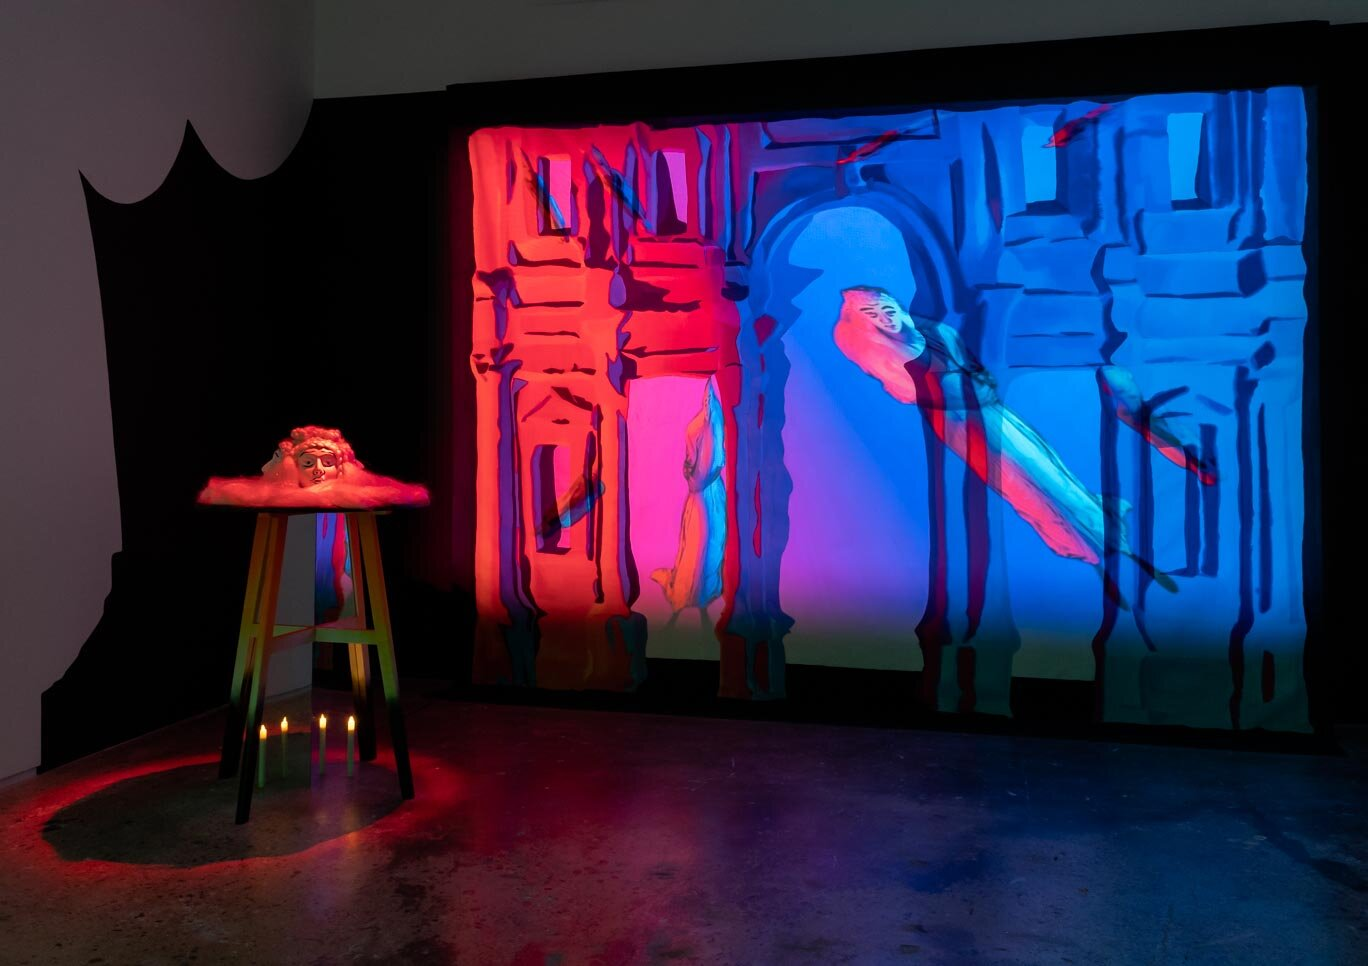 art installation with various layers, appearing like a set with a red and blue light shining on it